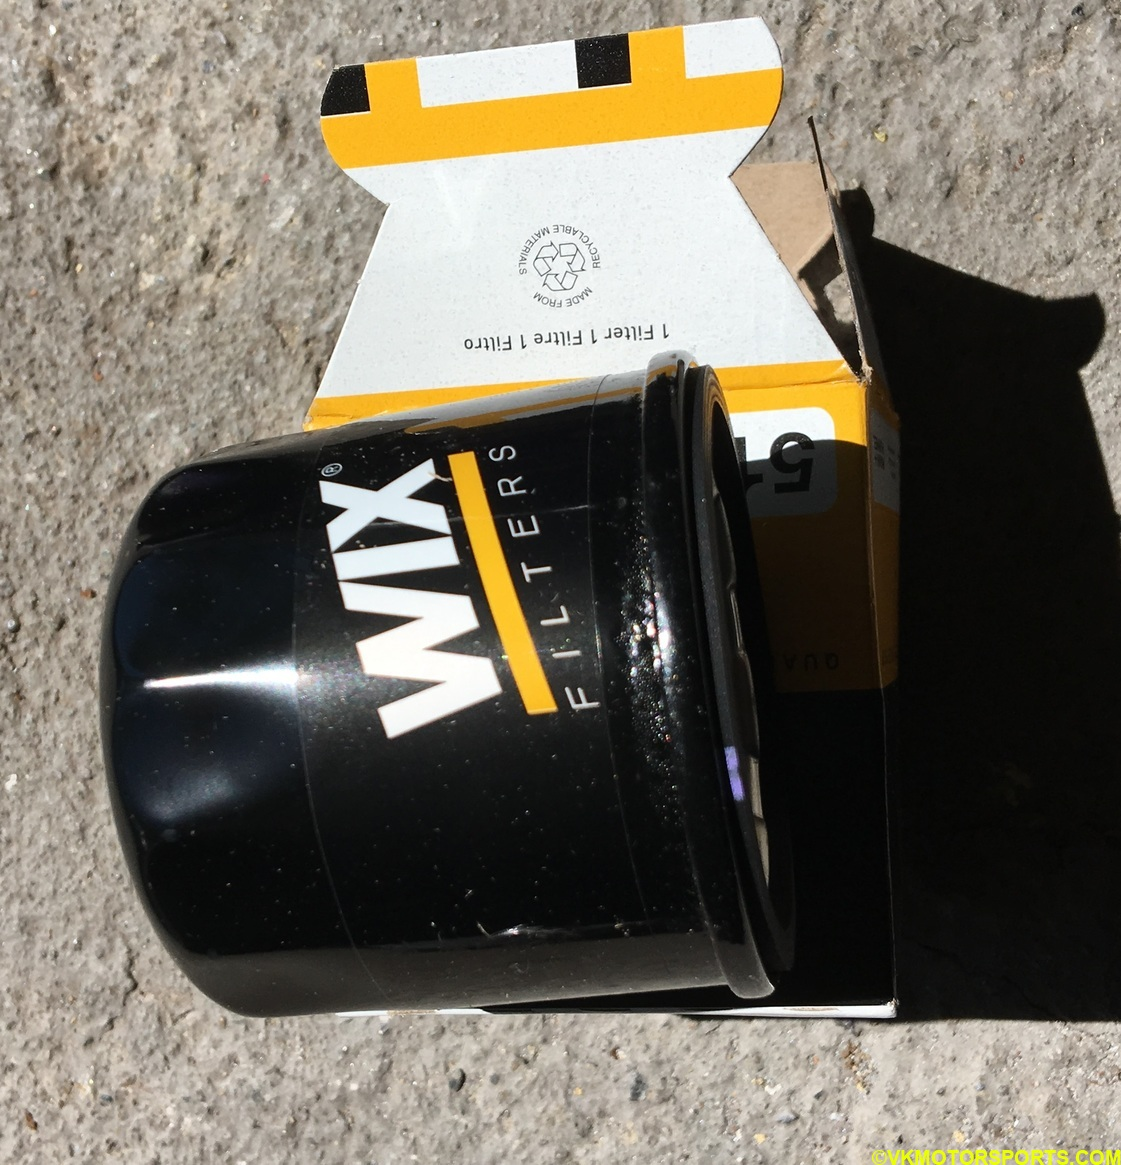 Figure 12. New Oil filter out of packaging